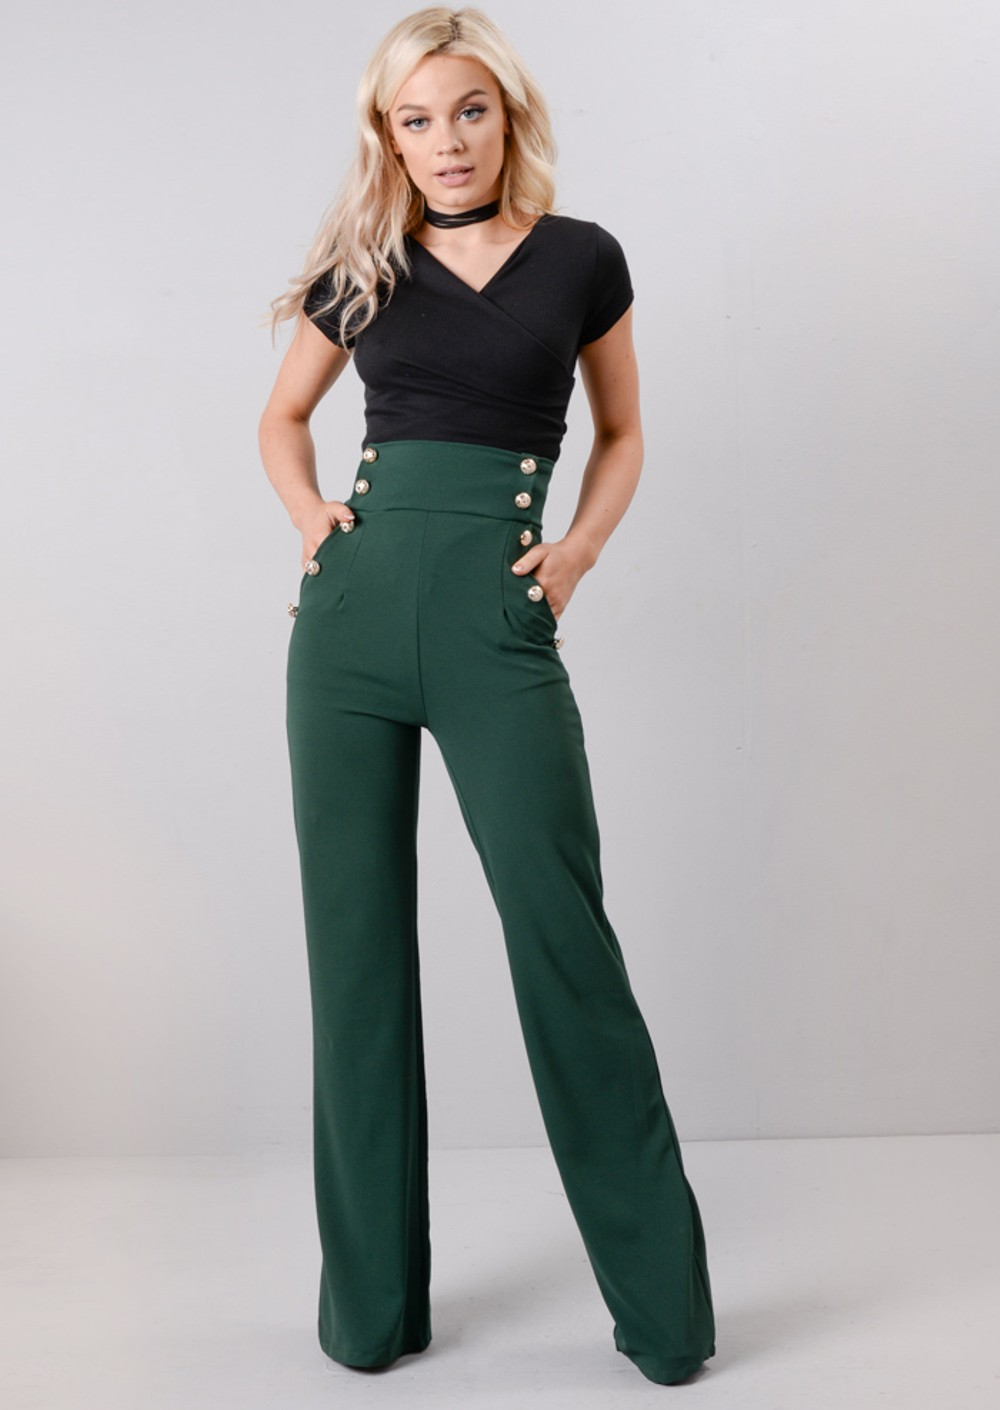 These are my FAVORITE style of jeans -V Hudson high-waist, wide-leg trouser jeans. Find this Pin and more on Stylishosity by Kathleen Carreiro. Need a good trouser style Jean for dress down at the office Hudson high-waist, wide-leg trouser jeans Hudson high-waist, wide-legtrouser jeans (got a pair very similar in a smaller size.